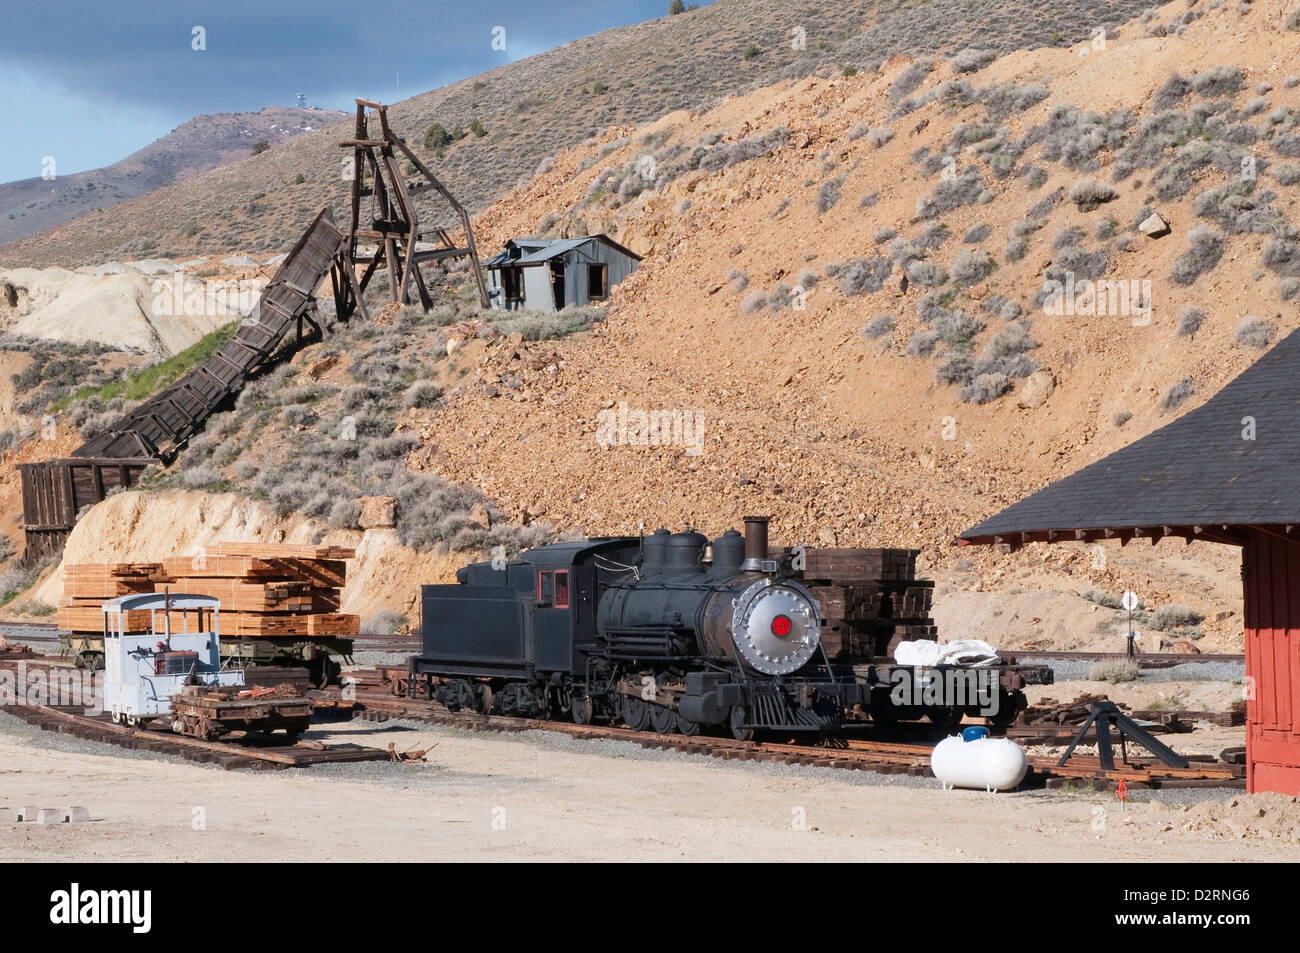 USA, Nevada. Old steam locomotive at historic Gold Hill train station, our side Virginia City, Nevada. - Stock Image